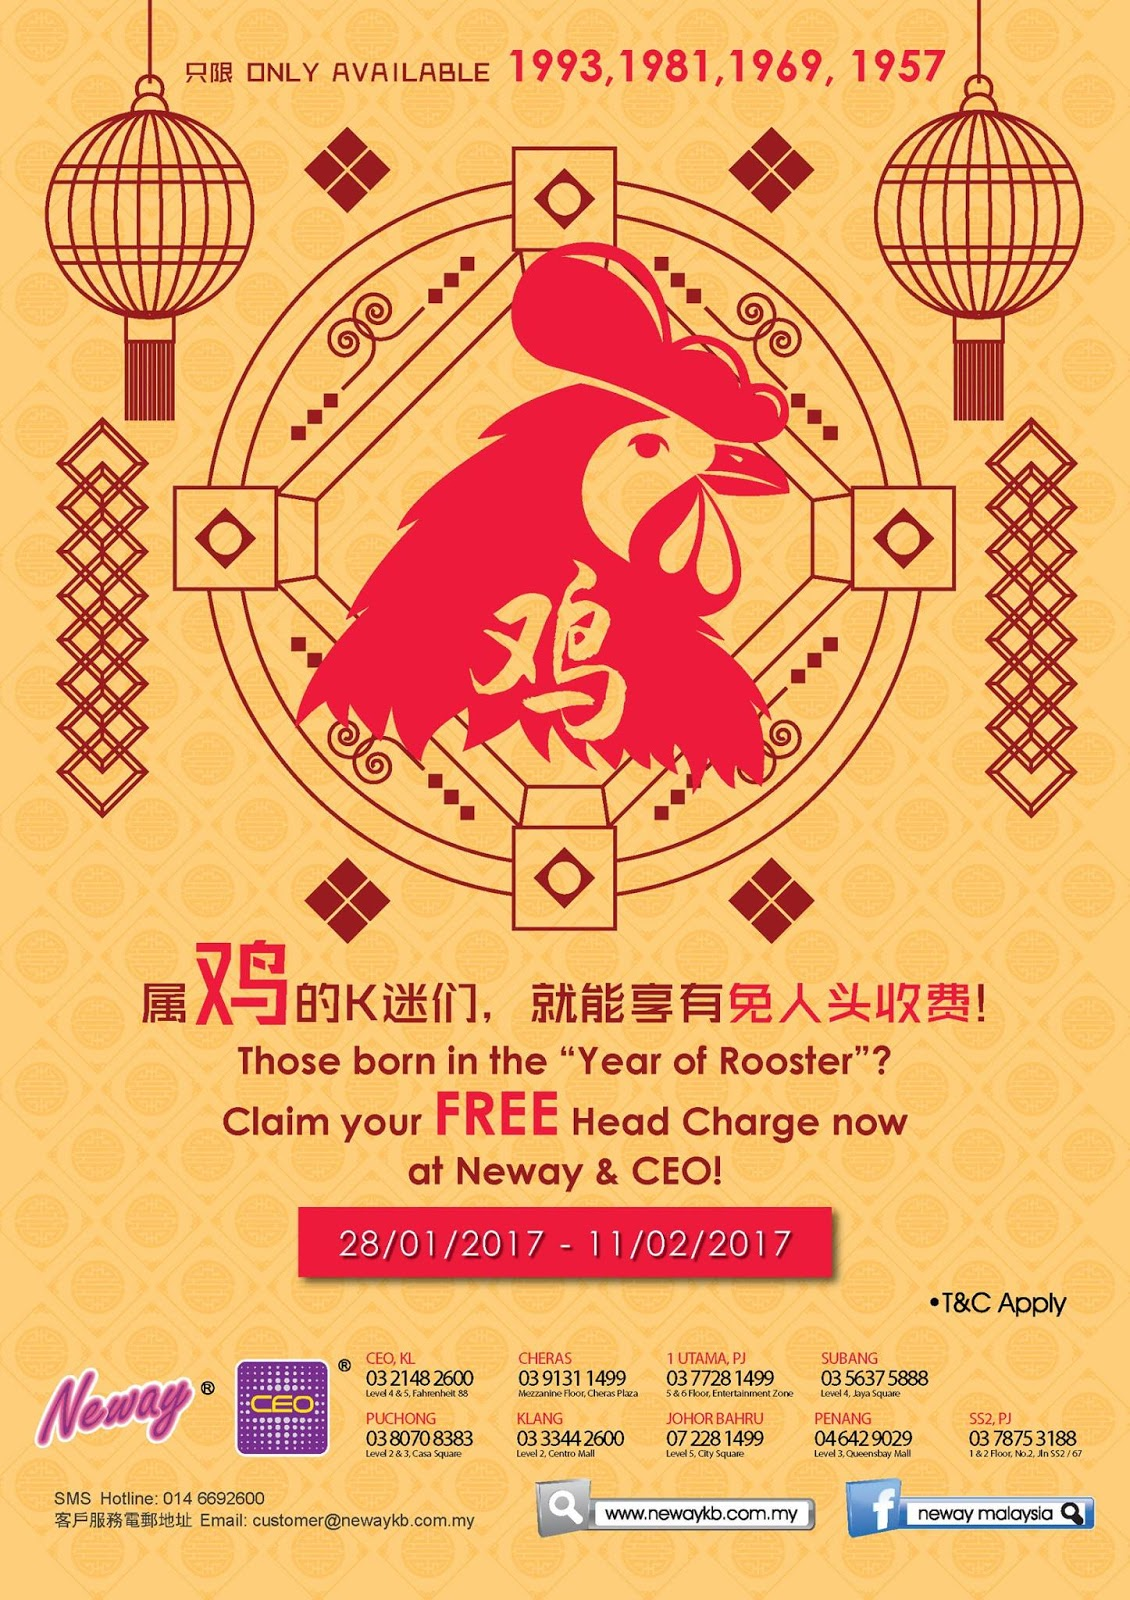 neway ceo karaoke box malaysia free head charge chinese new year promotion - Chinese New Year 1969